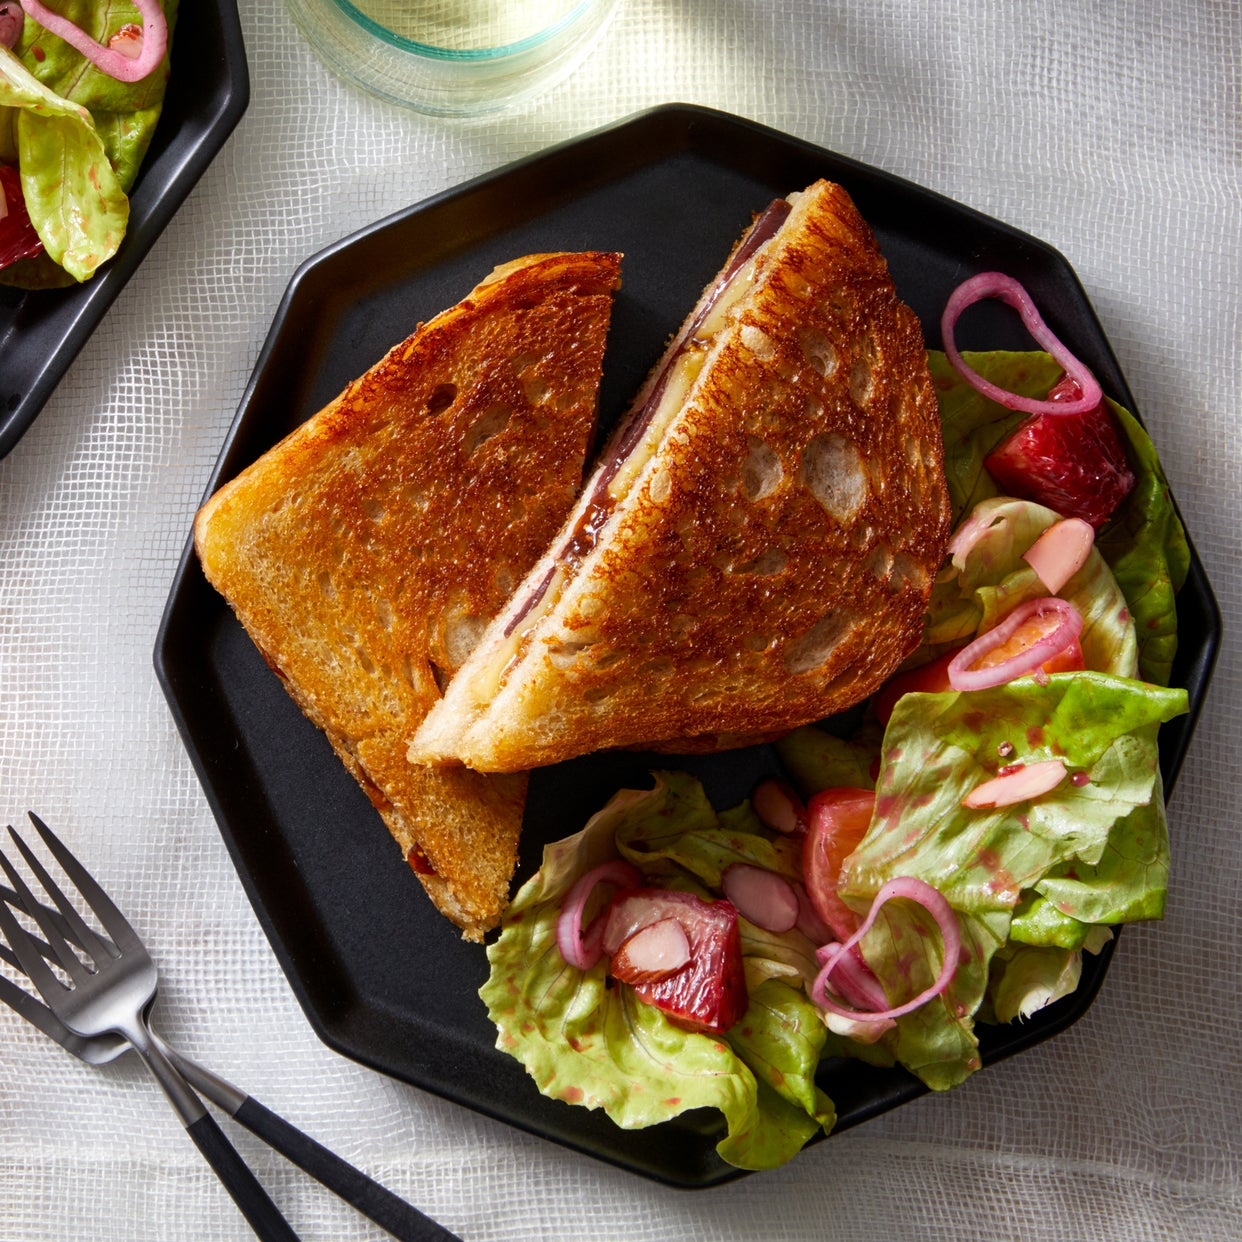 Pickled Beet Grilled Cheese Sandwiches with Mixed Citrus Salad